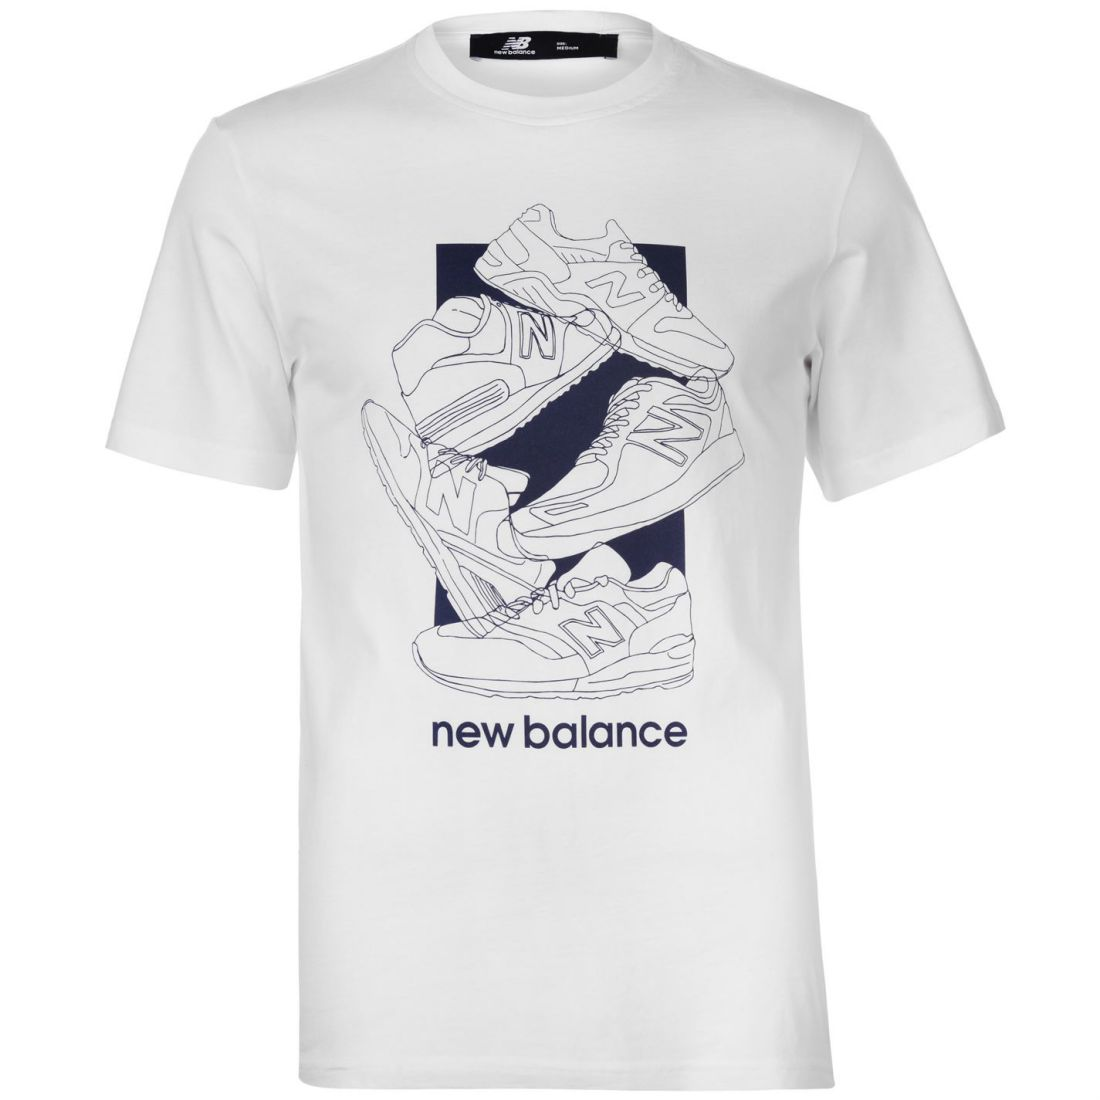 77580ffedaf0a Details about New Balance Mens 5 Shoe QTT T Shirt Crew Neck Tee Top Short  Sleeve Round